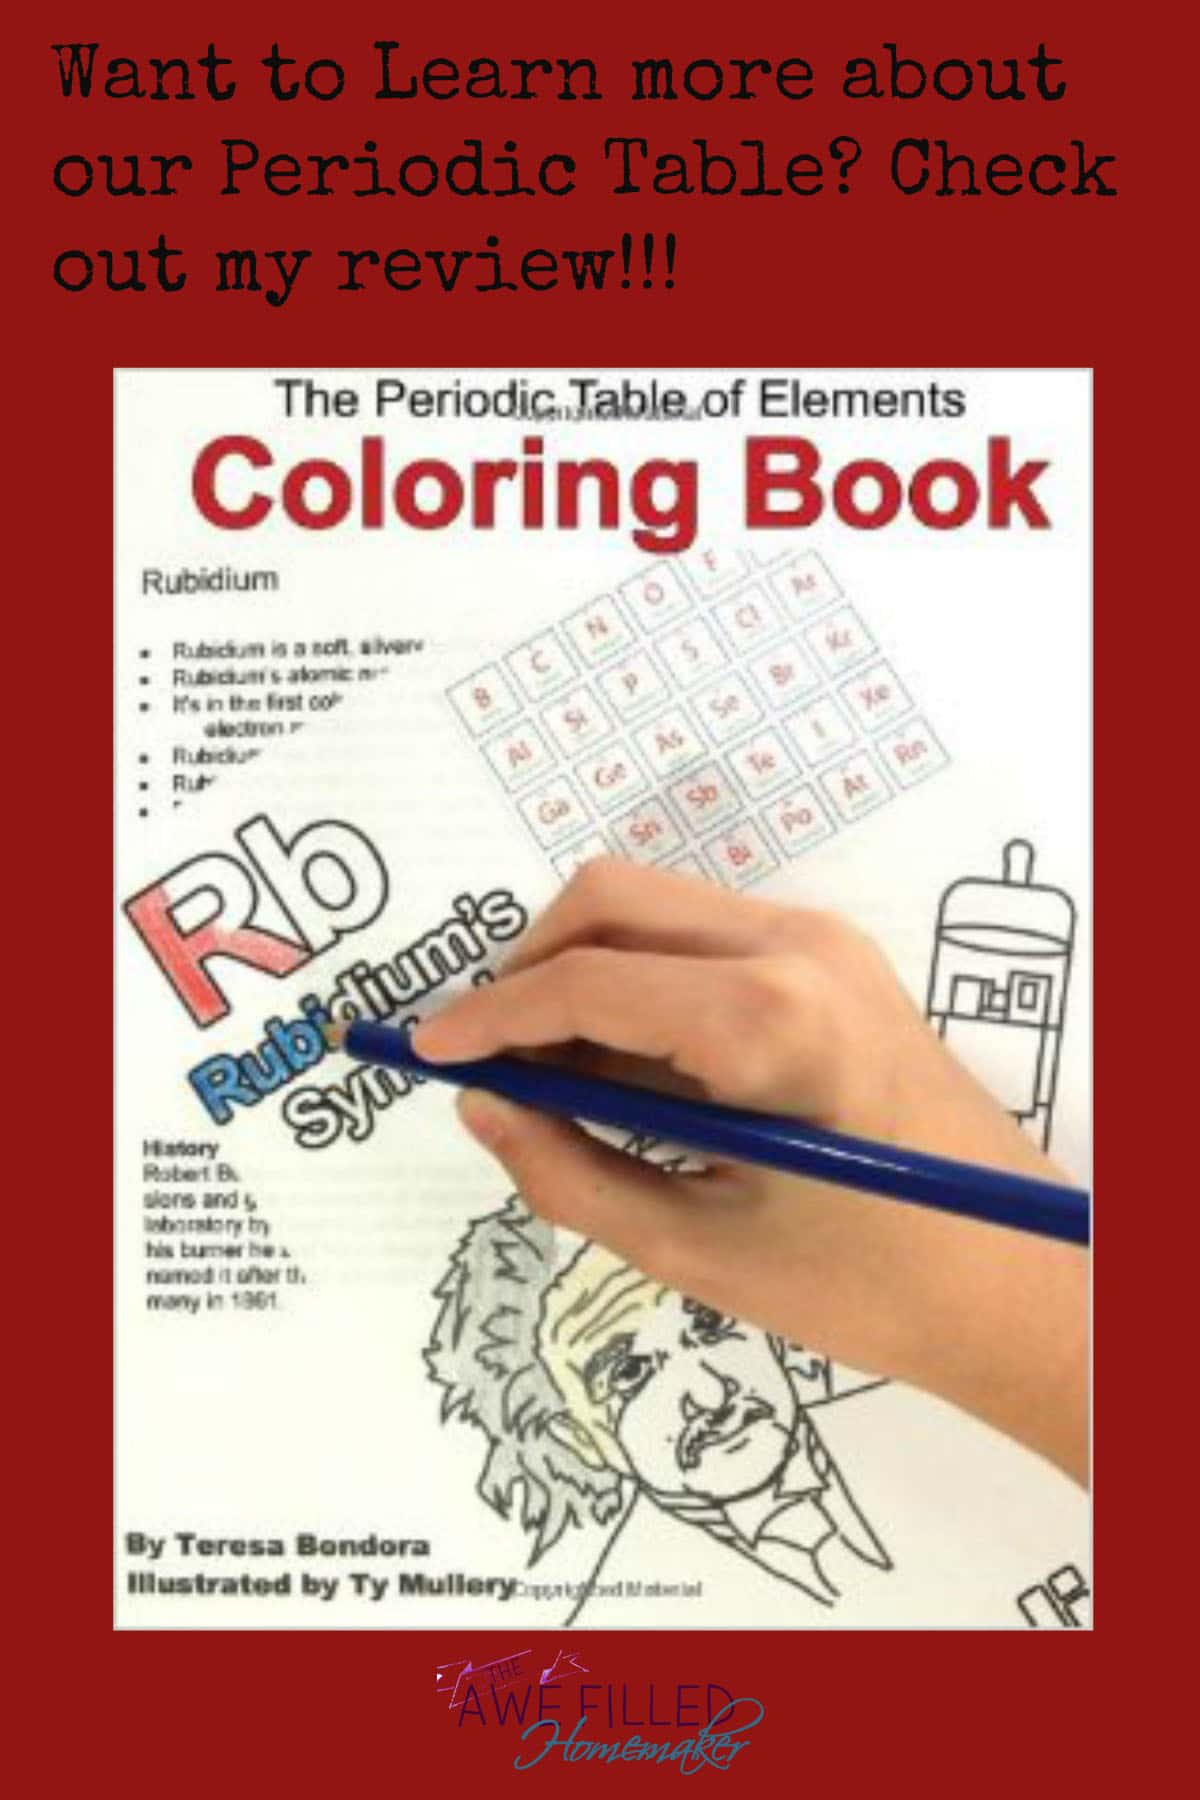 The periodic table of elements coloring book awe filled homemaker gamestrikefo Gallery